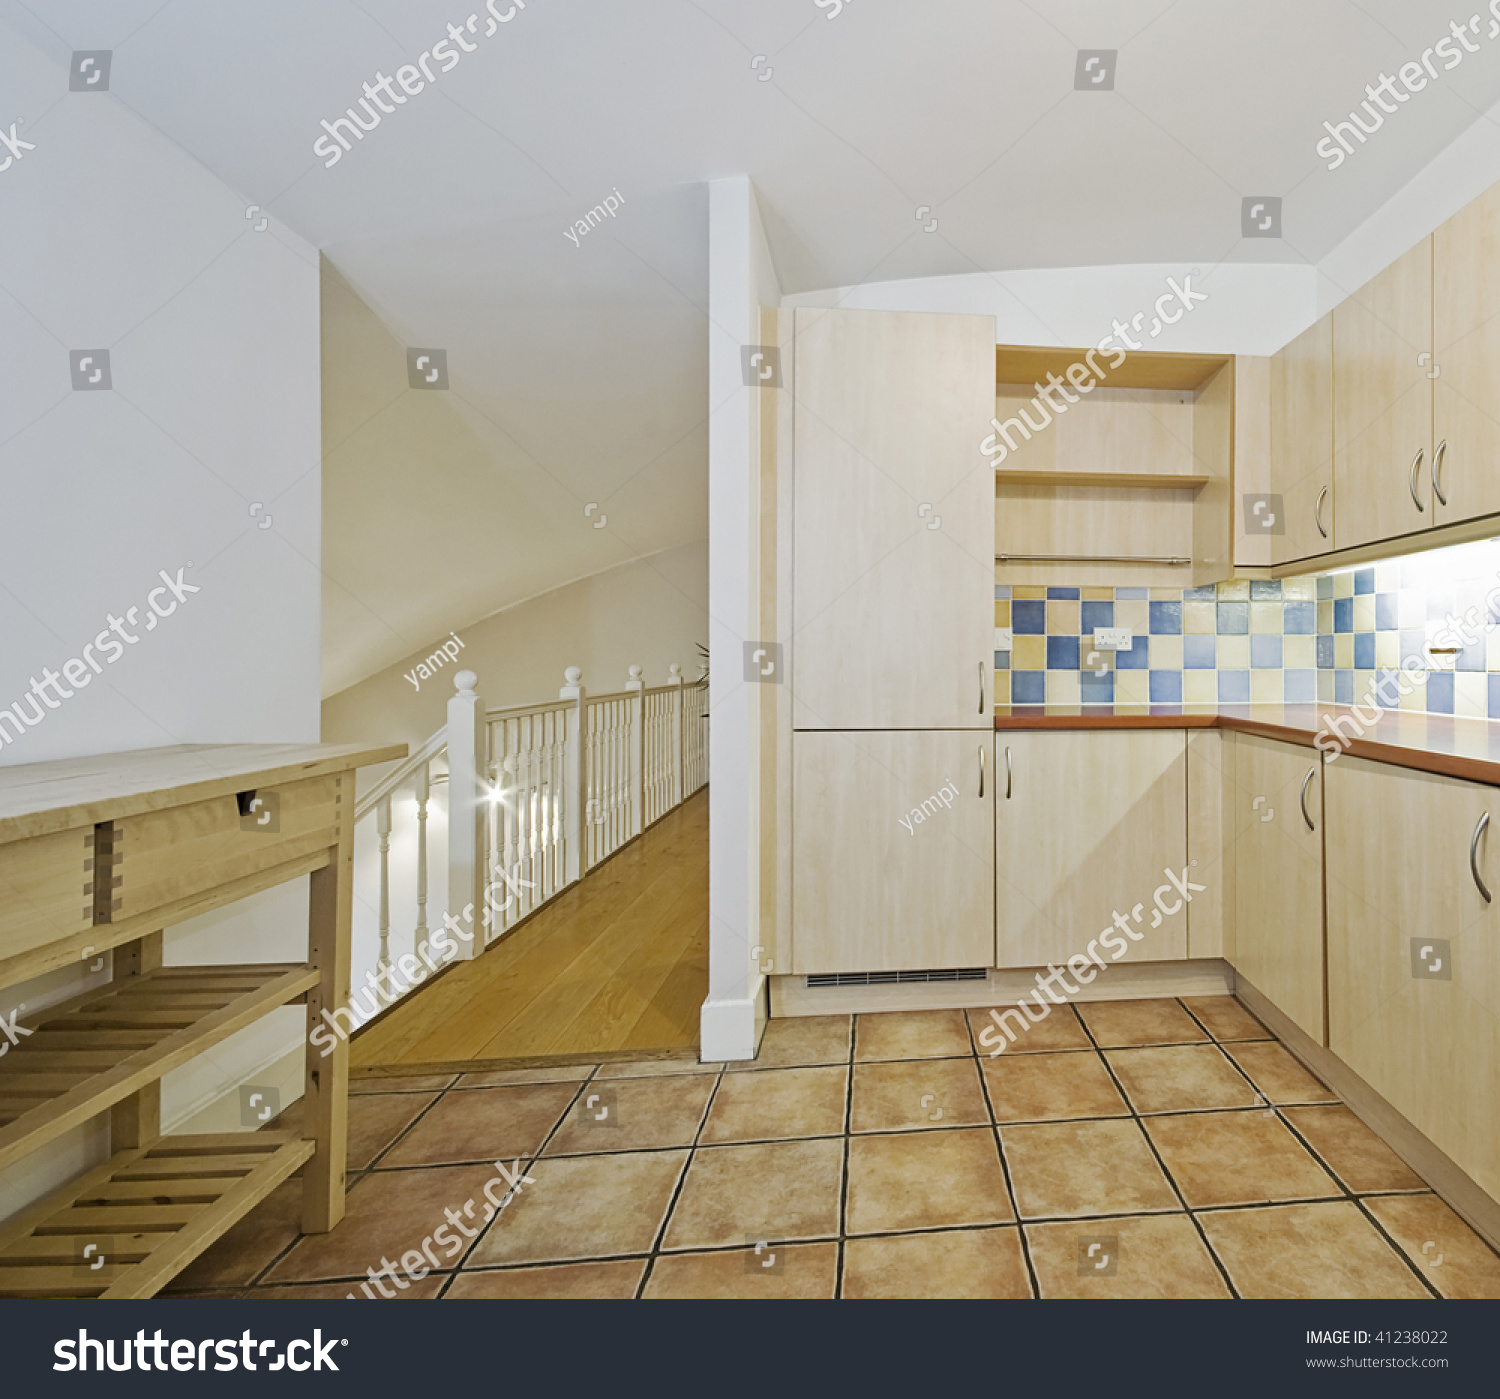 How To Divide An Open Plan Space 9 Ideas: Open Plan Kitchen To A Split Level Living Room Stock Photo